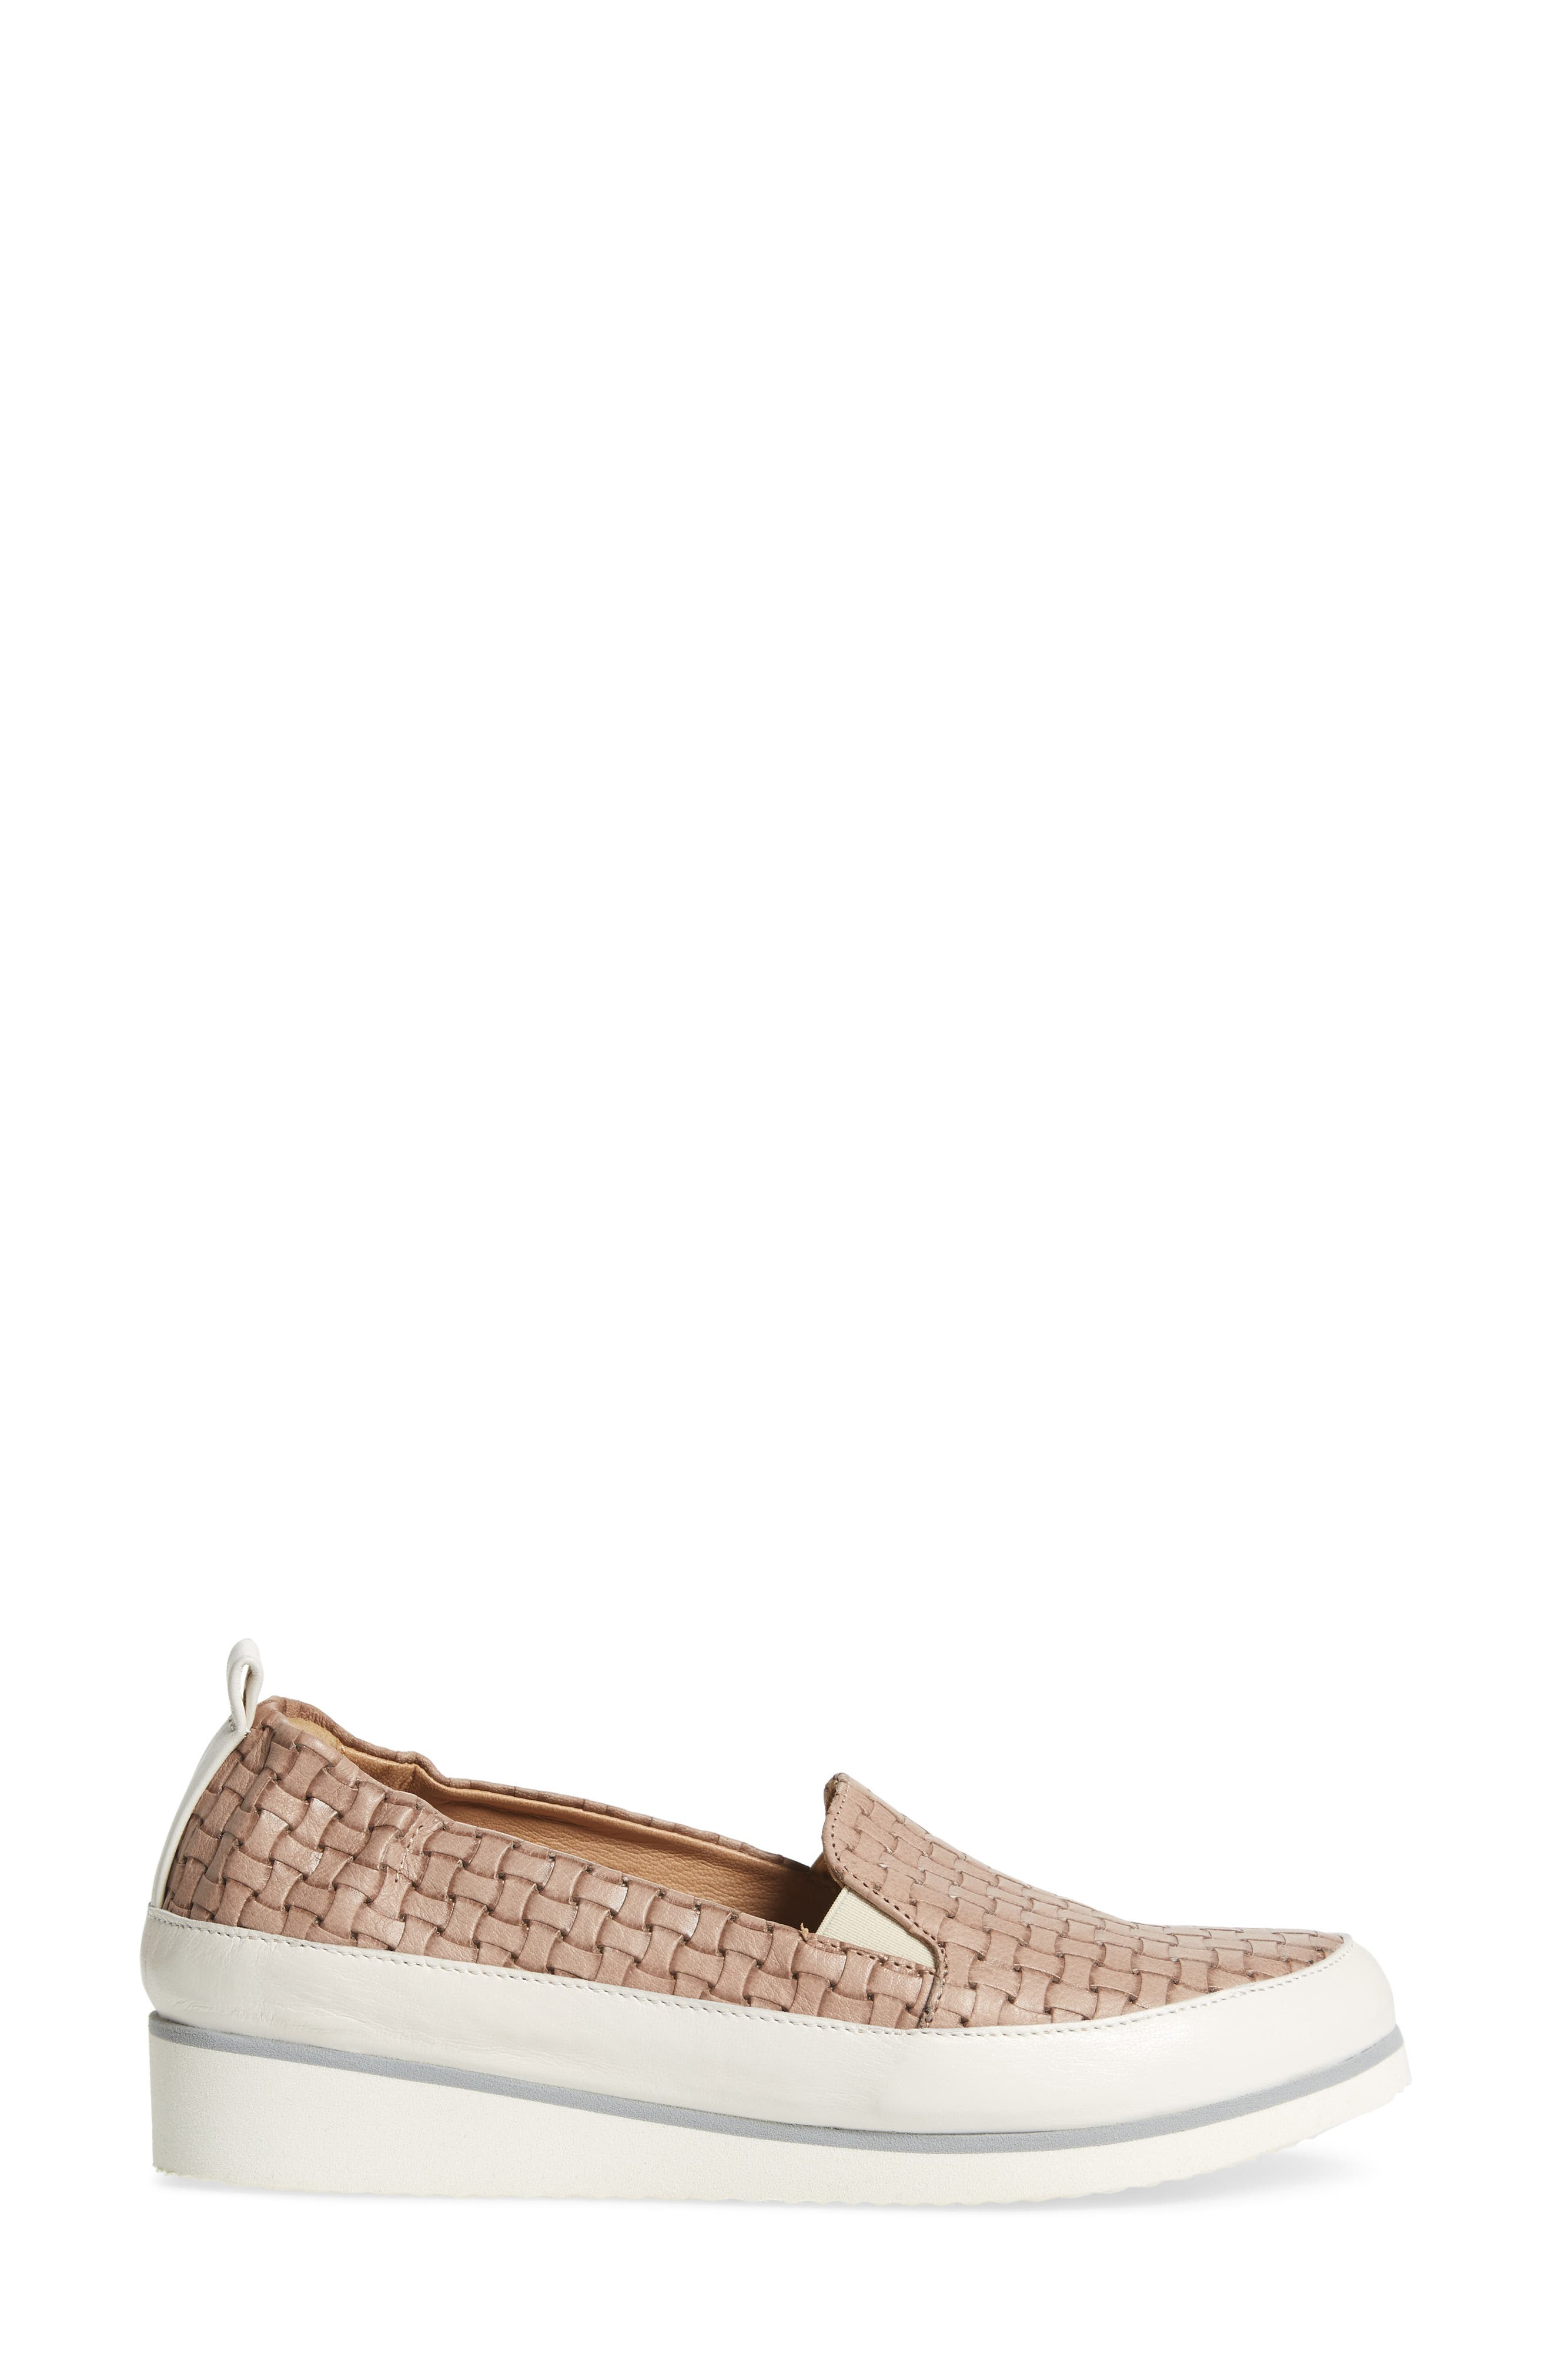 Nell Slip-On Sneaker,                             Alternate thumbnail 14, color,